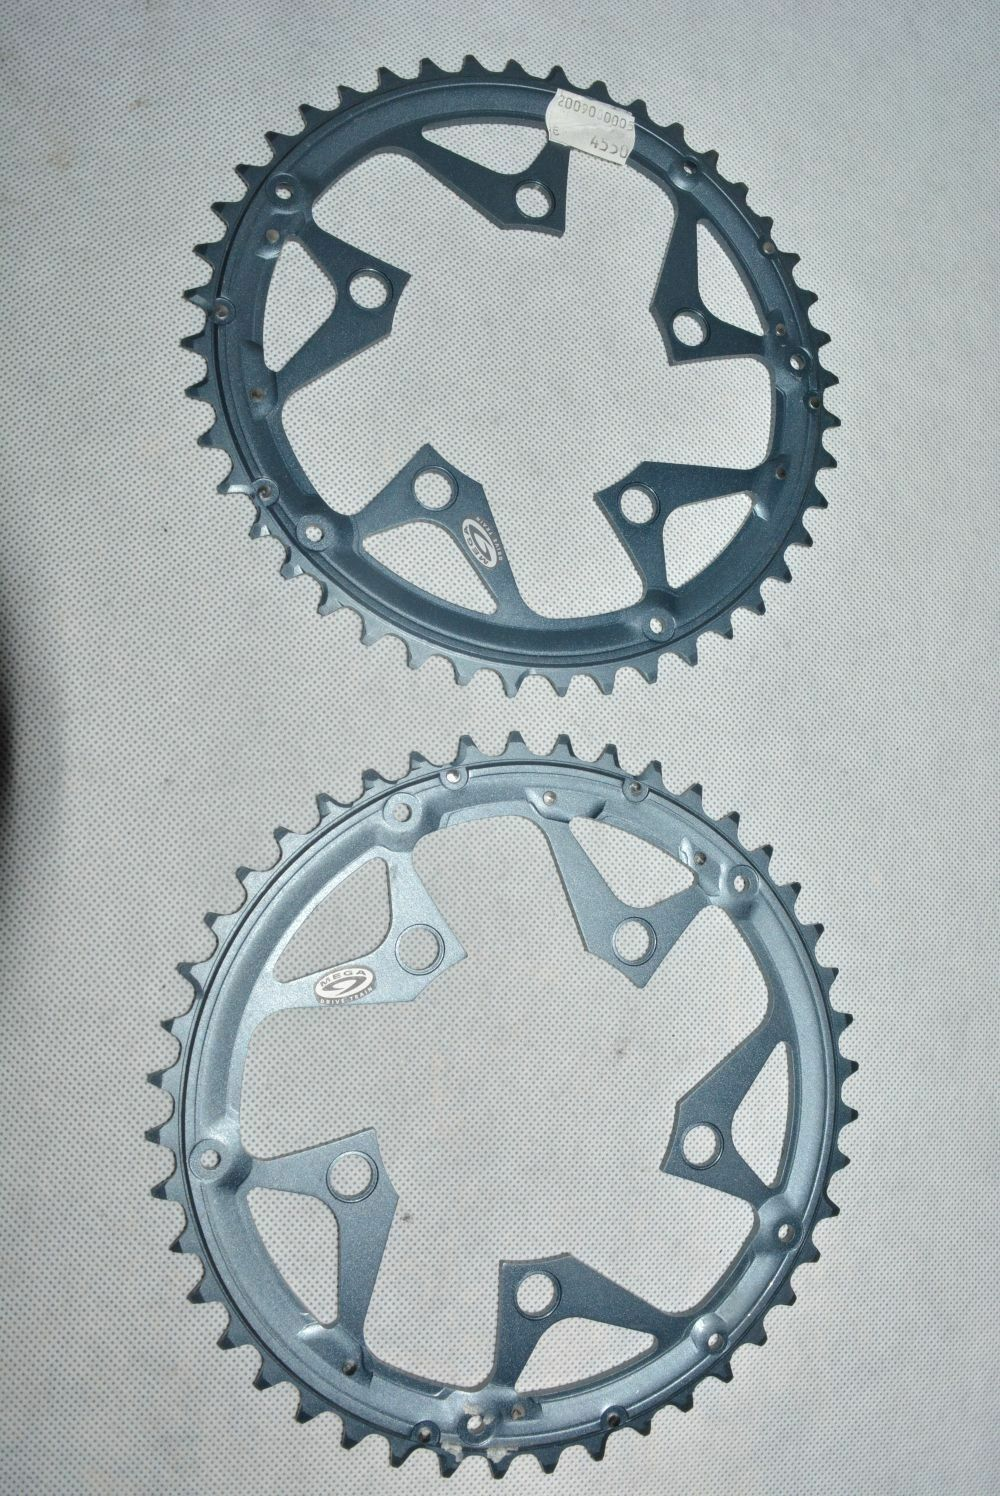 SHIMANO DEORE LX chainring    44t    BCD 94mm   9 speed   NOS